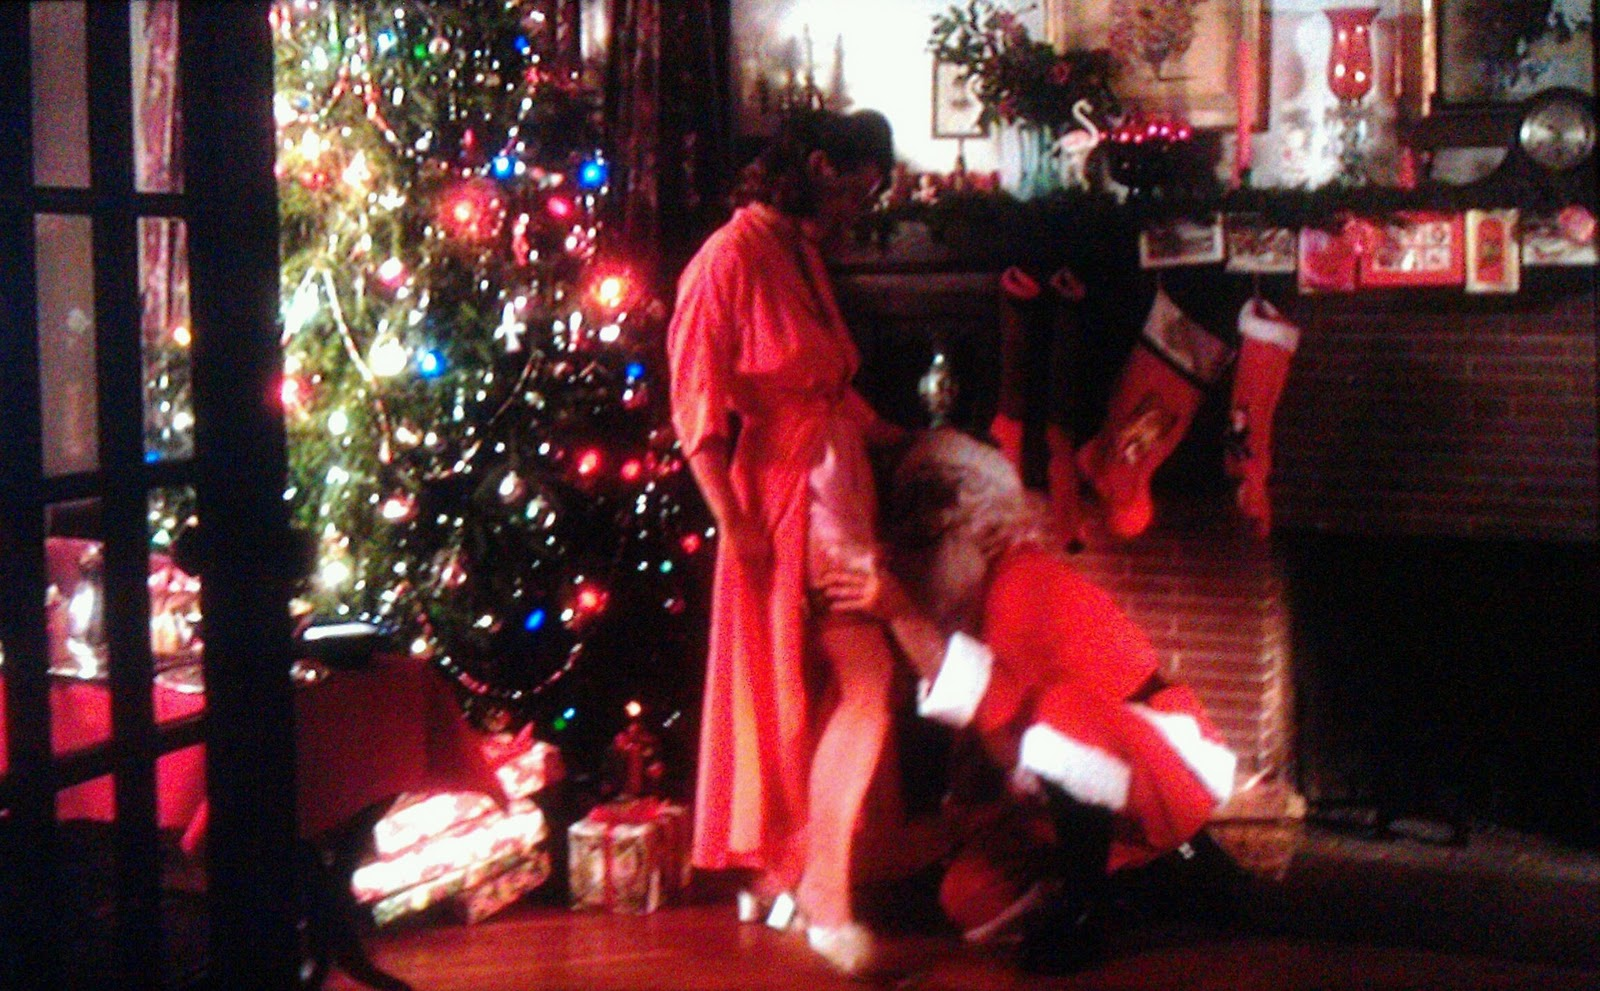 Horror Movie Review: Christmas Evil (1980) - Games, Brrraaains & A Head-Banging Life